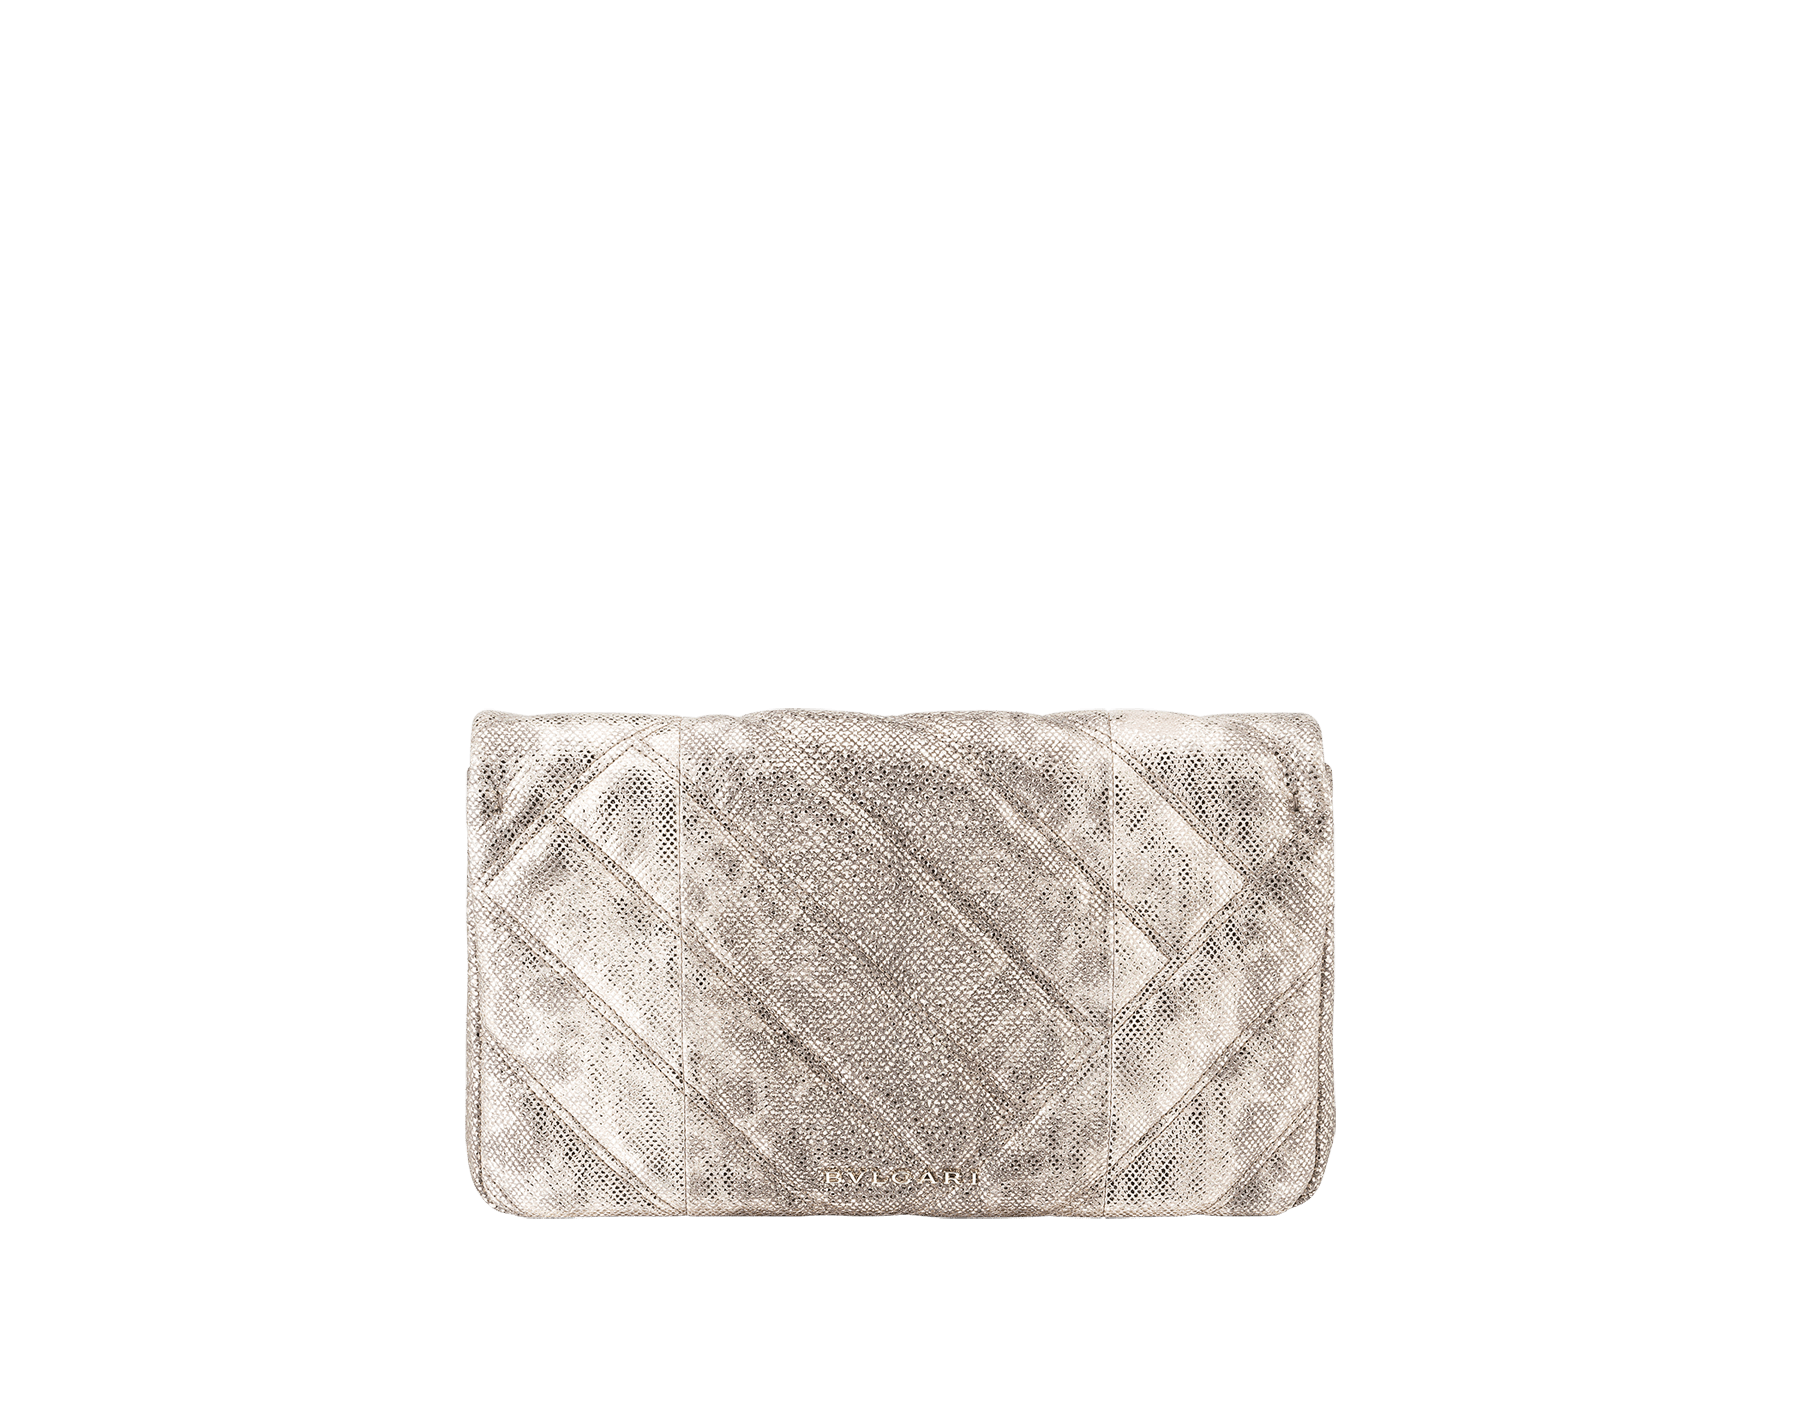 Serpenti Cabochon clutch bag in milky opal metallic karung skin, with a graphic motif. Brass light gold plated tempting snake head closure in black and glitter milky opal enamel and black onyx eyes. 1025-MK image 3